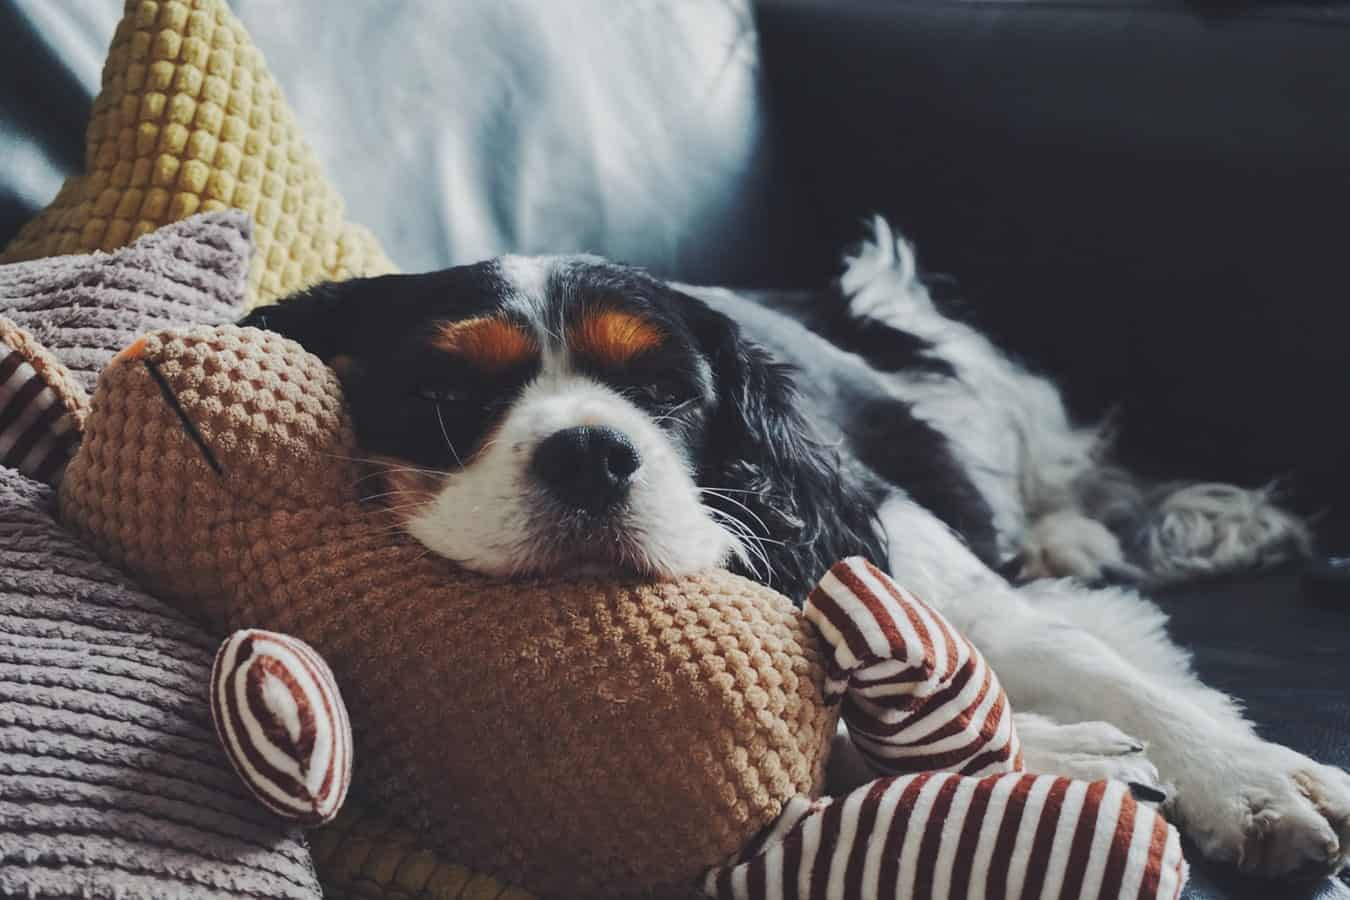 A sleepy puppy resting on some cushions